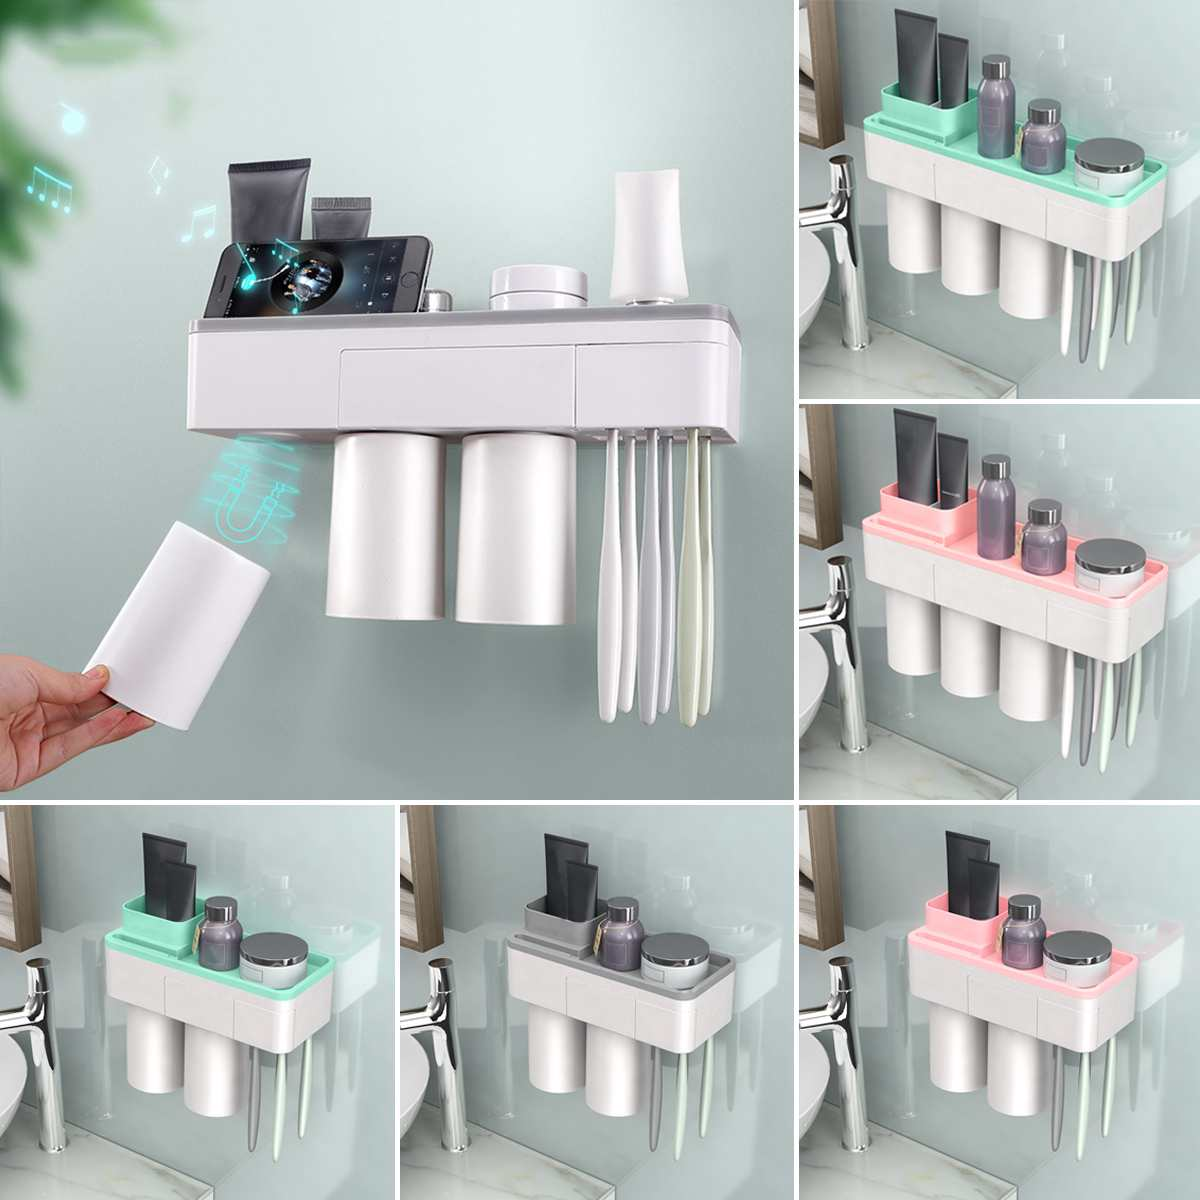 A Shelf 58 15c 5 Chrome Pull Out Basket: Plastic Magnetic Toothbrush Holder Storage Rack Shelf Home